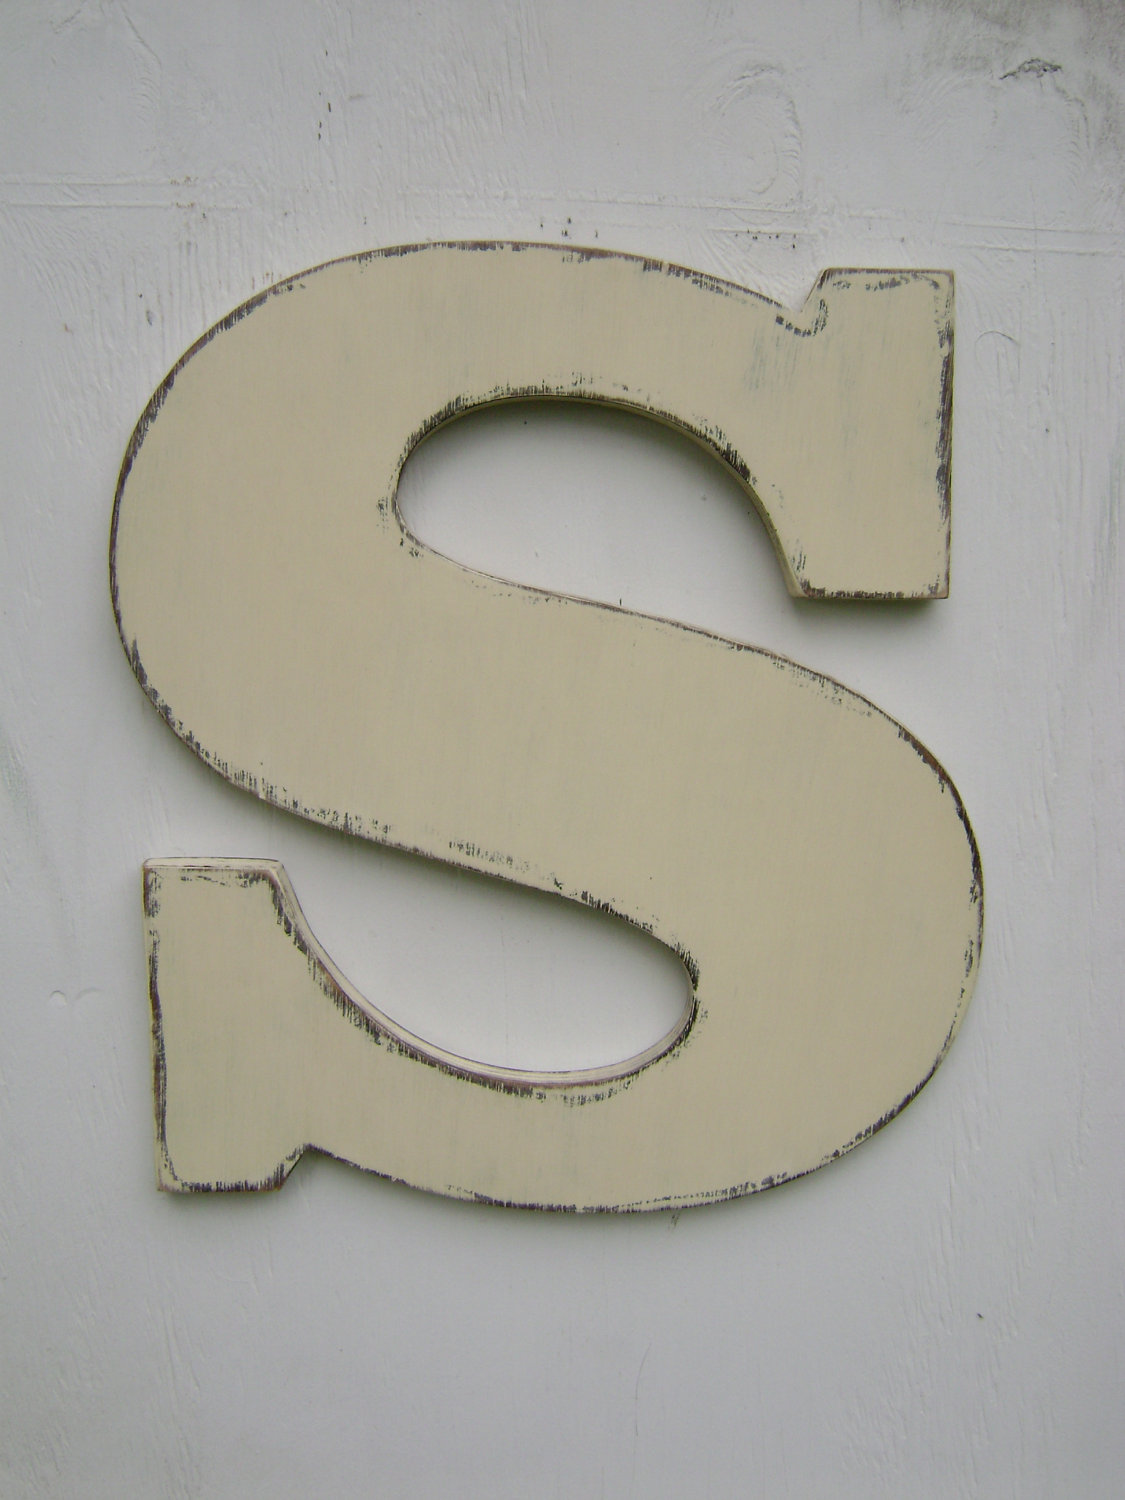 3 d large wooden letter s rustic decor vintage style 18 for Large letter k wall decor